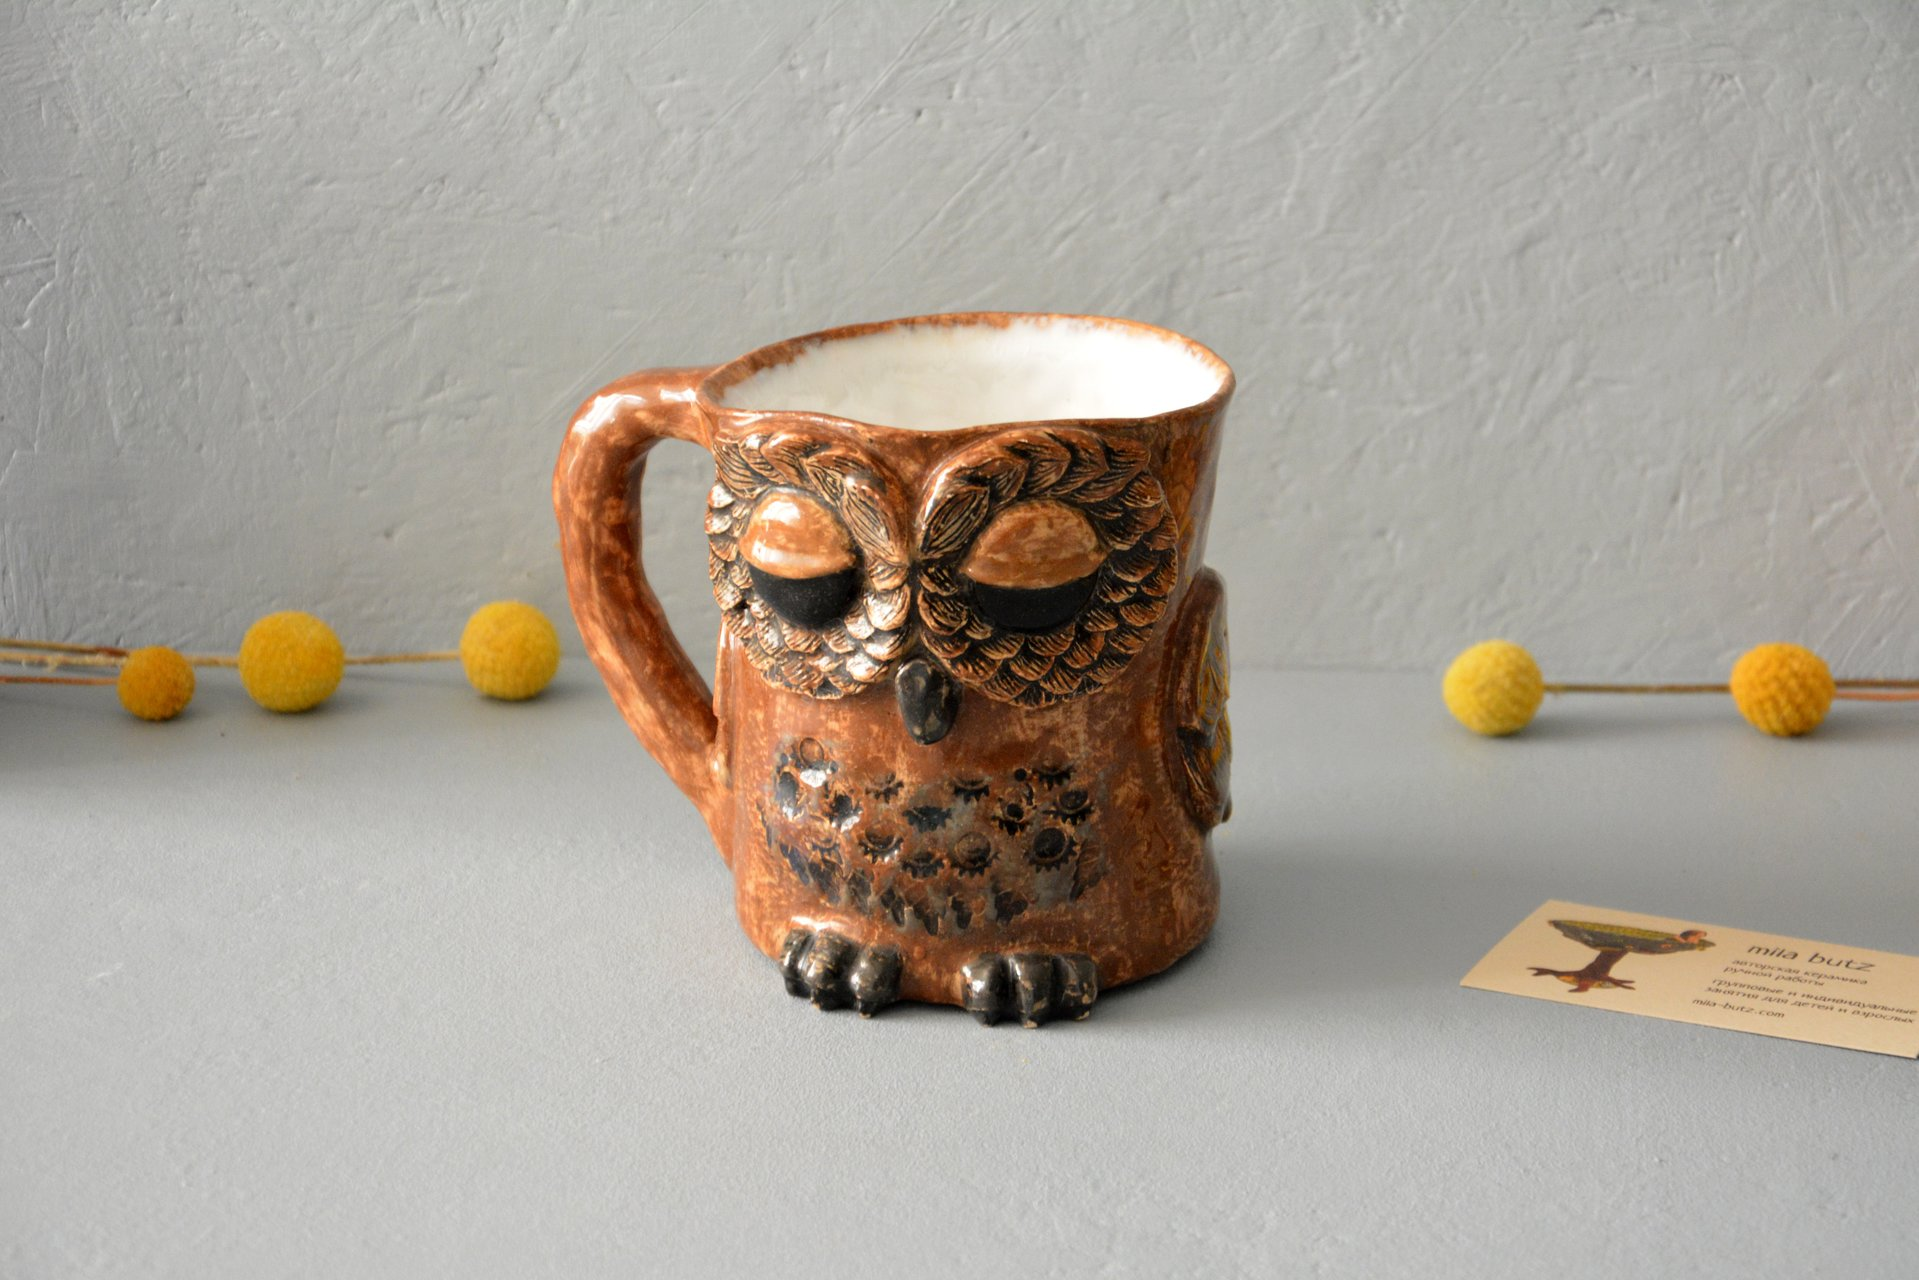 Owl is a large cup, аmount - 0.5 l,  height - 14 cm, diameter - 10 cm, photo 2 of 6.